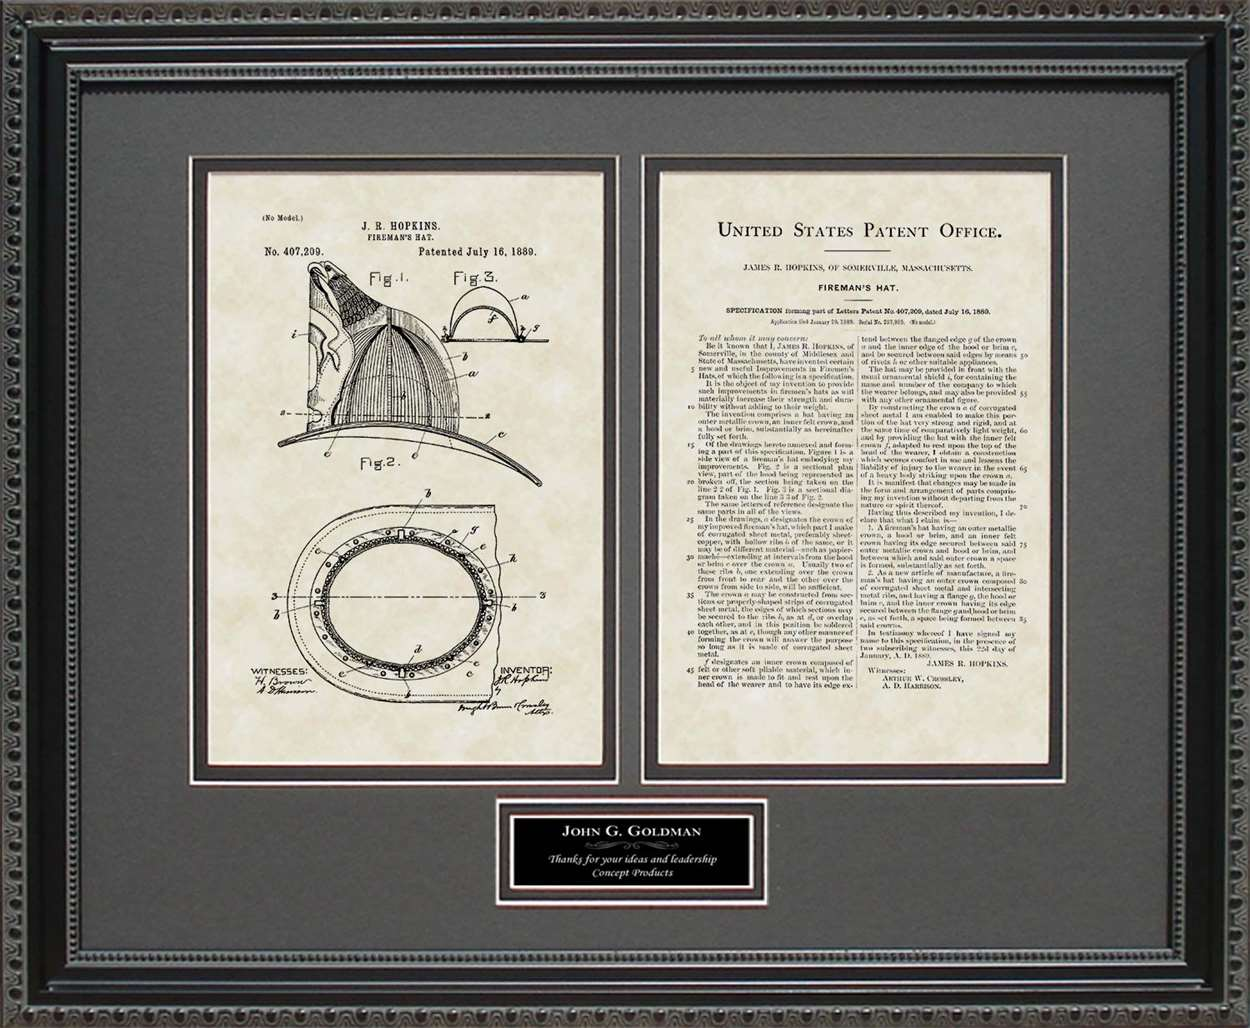 Personalized Fireman's Helmet Patent, Art & Copy, Hopkins, 1889